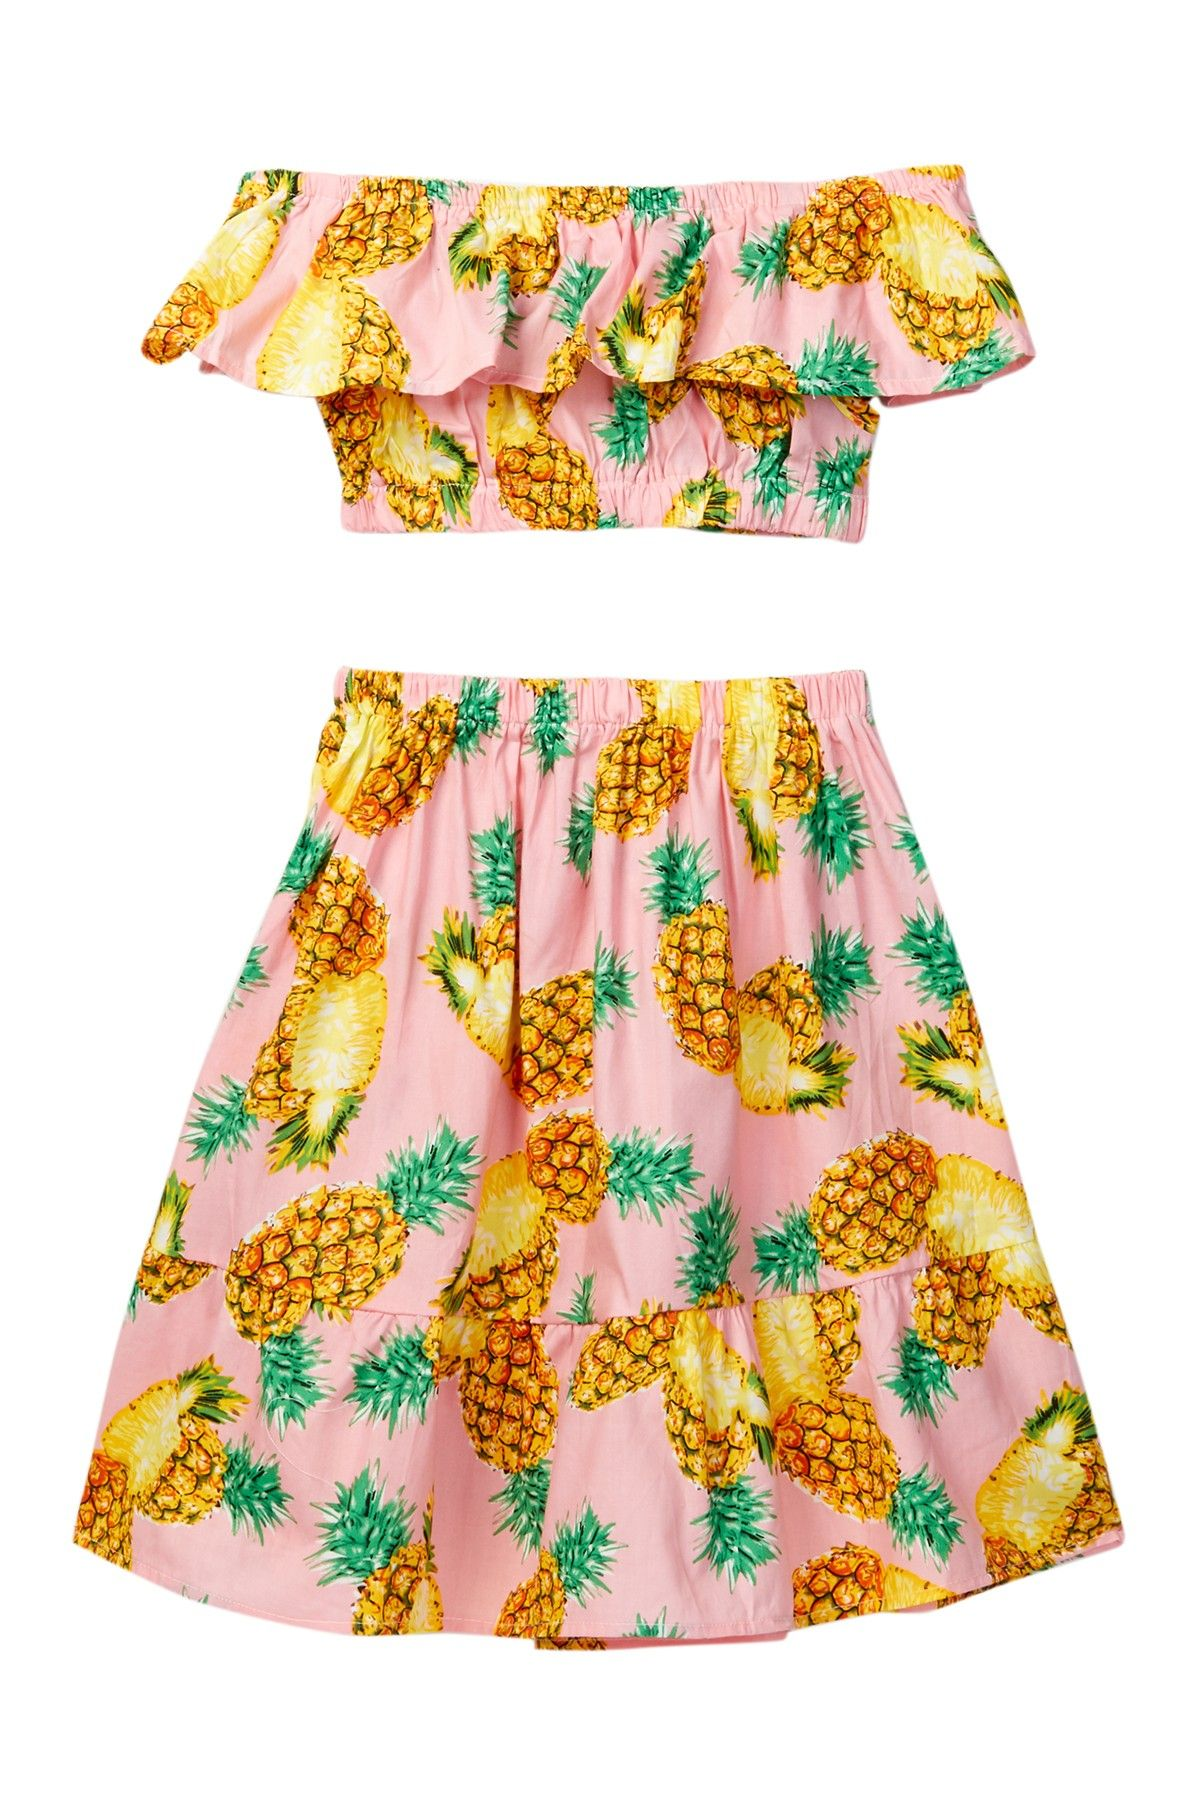 03f53b1c950d1 Off-the-Shoulder Pineapple Print Crop Top & Skirt 2-Piece Set ...